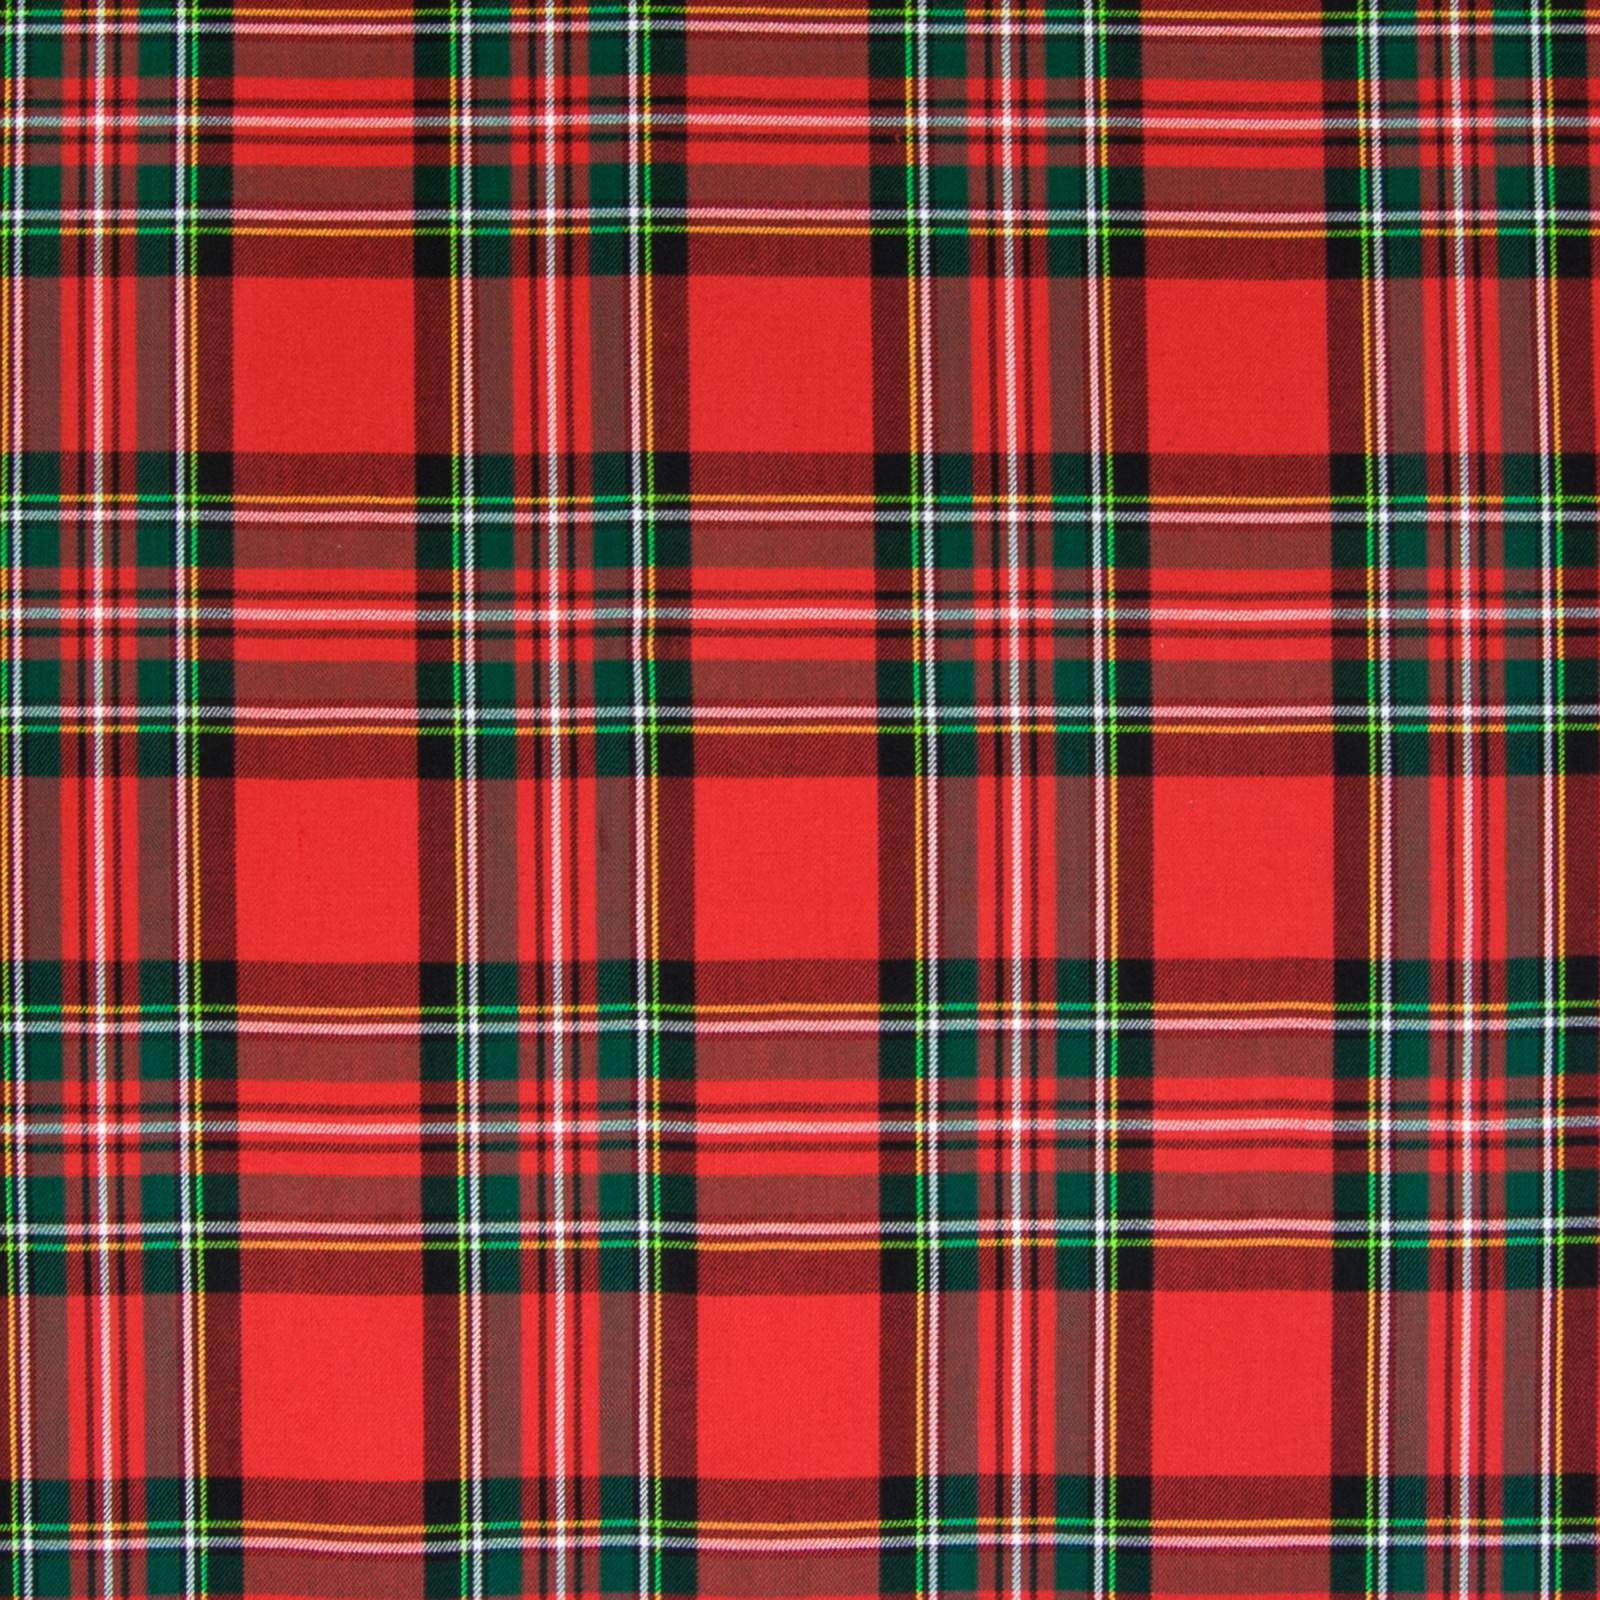 plaid red and green plaid woven upholstery fabric. Black Bedroom Furniture Sets. Home Design Ideas